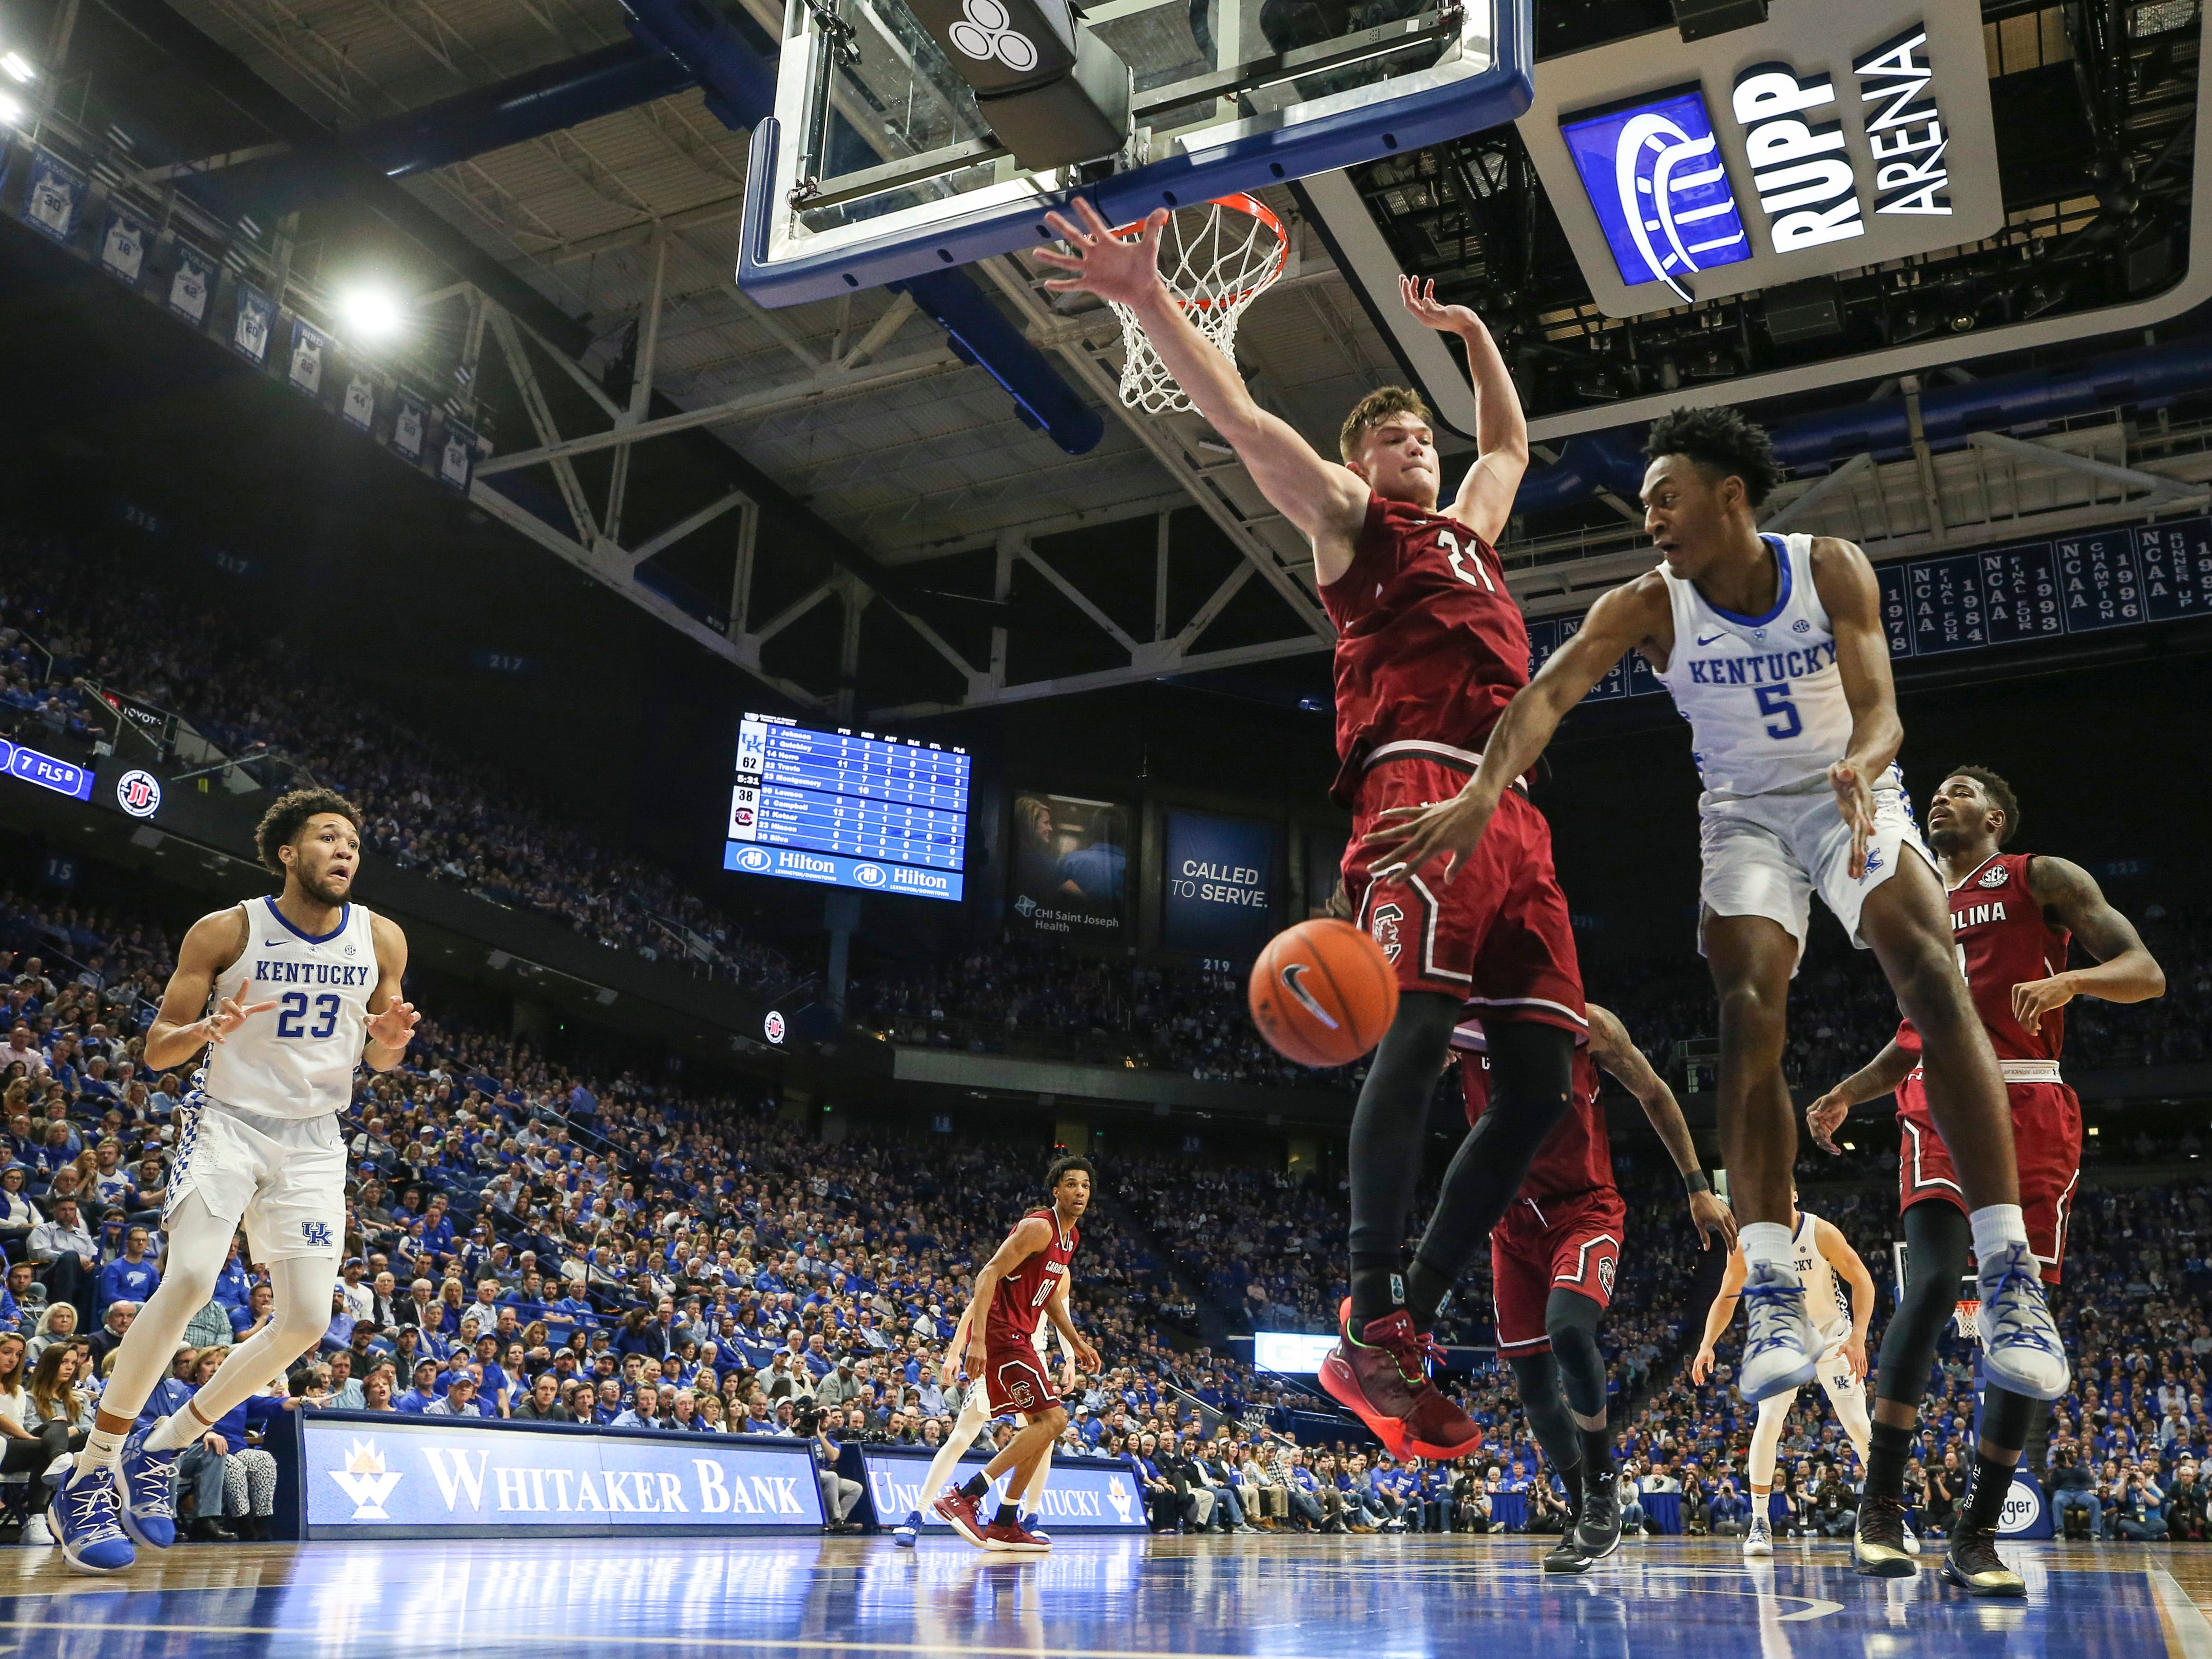 Kentucky's Immanuel Quickley made a pass as the Wildcats cruised past the Gamecocks 76-48. Calipari praised Quickley's effort after the game. Feb. 5, 2019